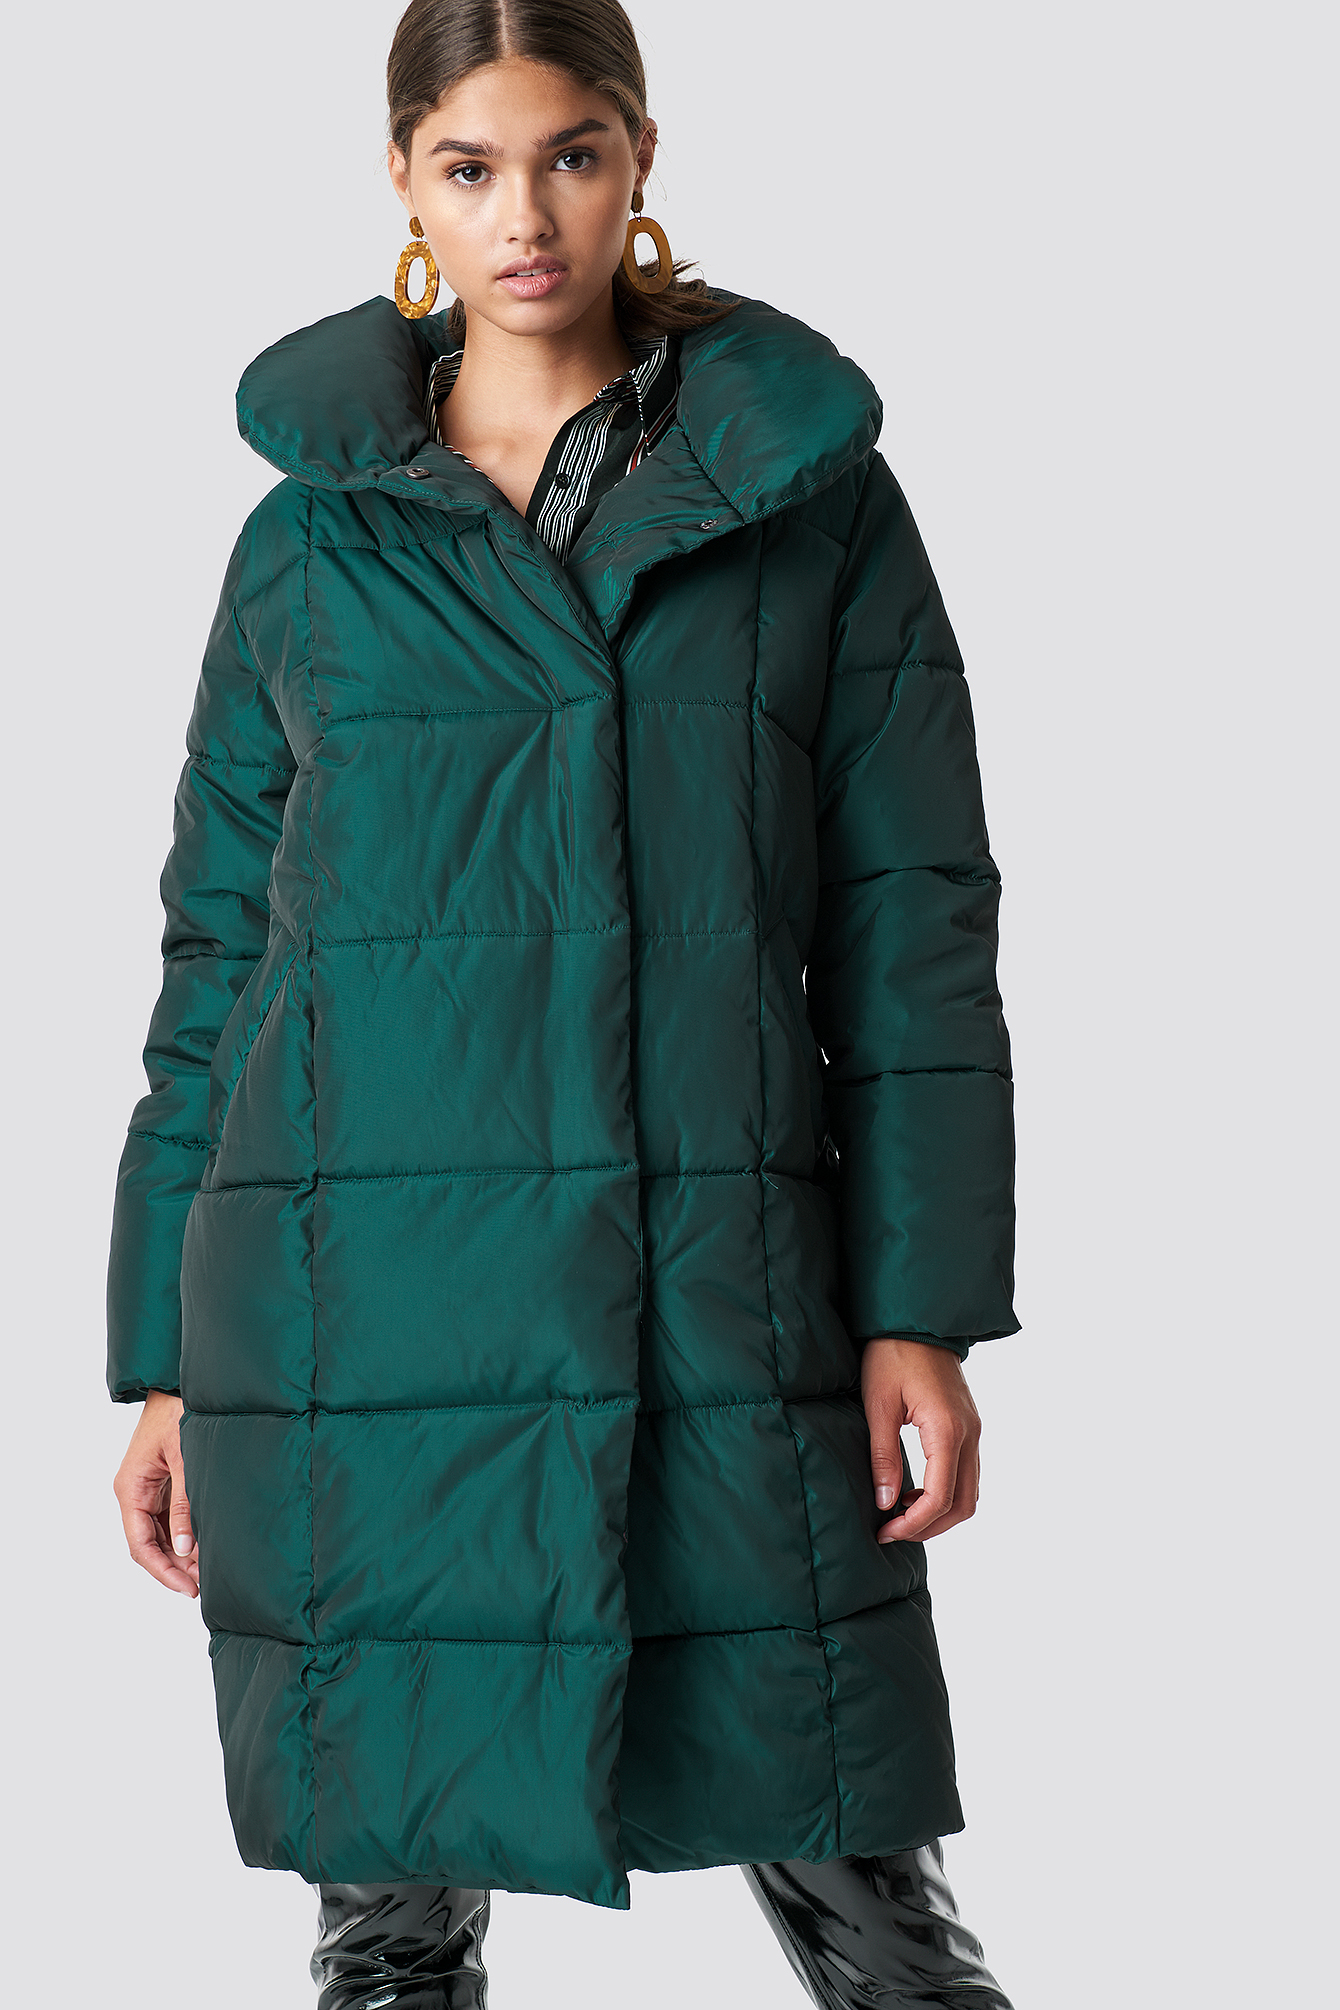 na-kd -  Shawl Collar Shiny Padded Jacket - Green